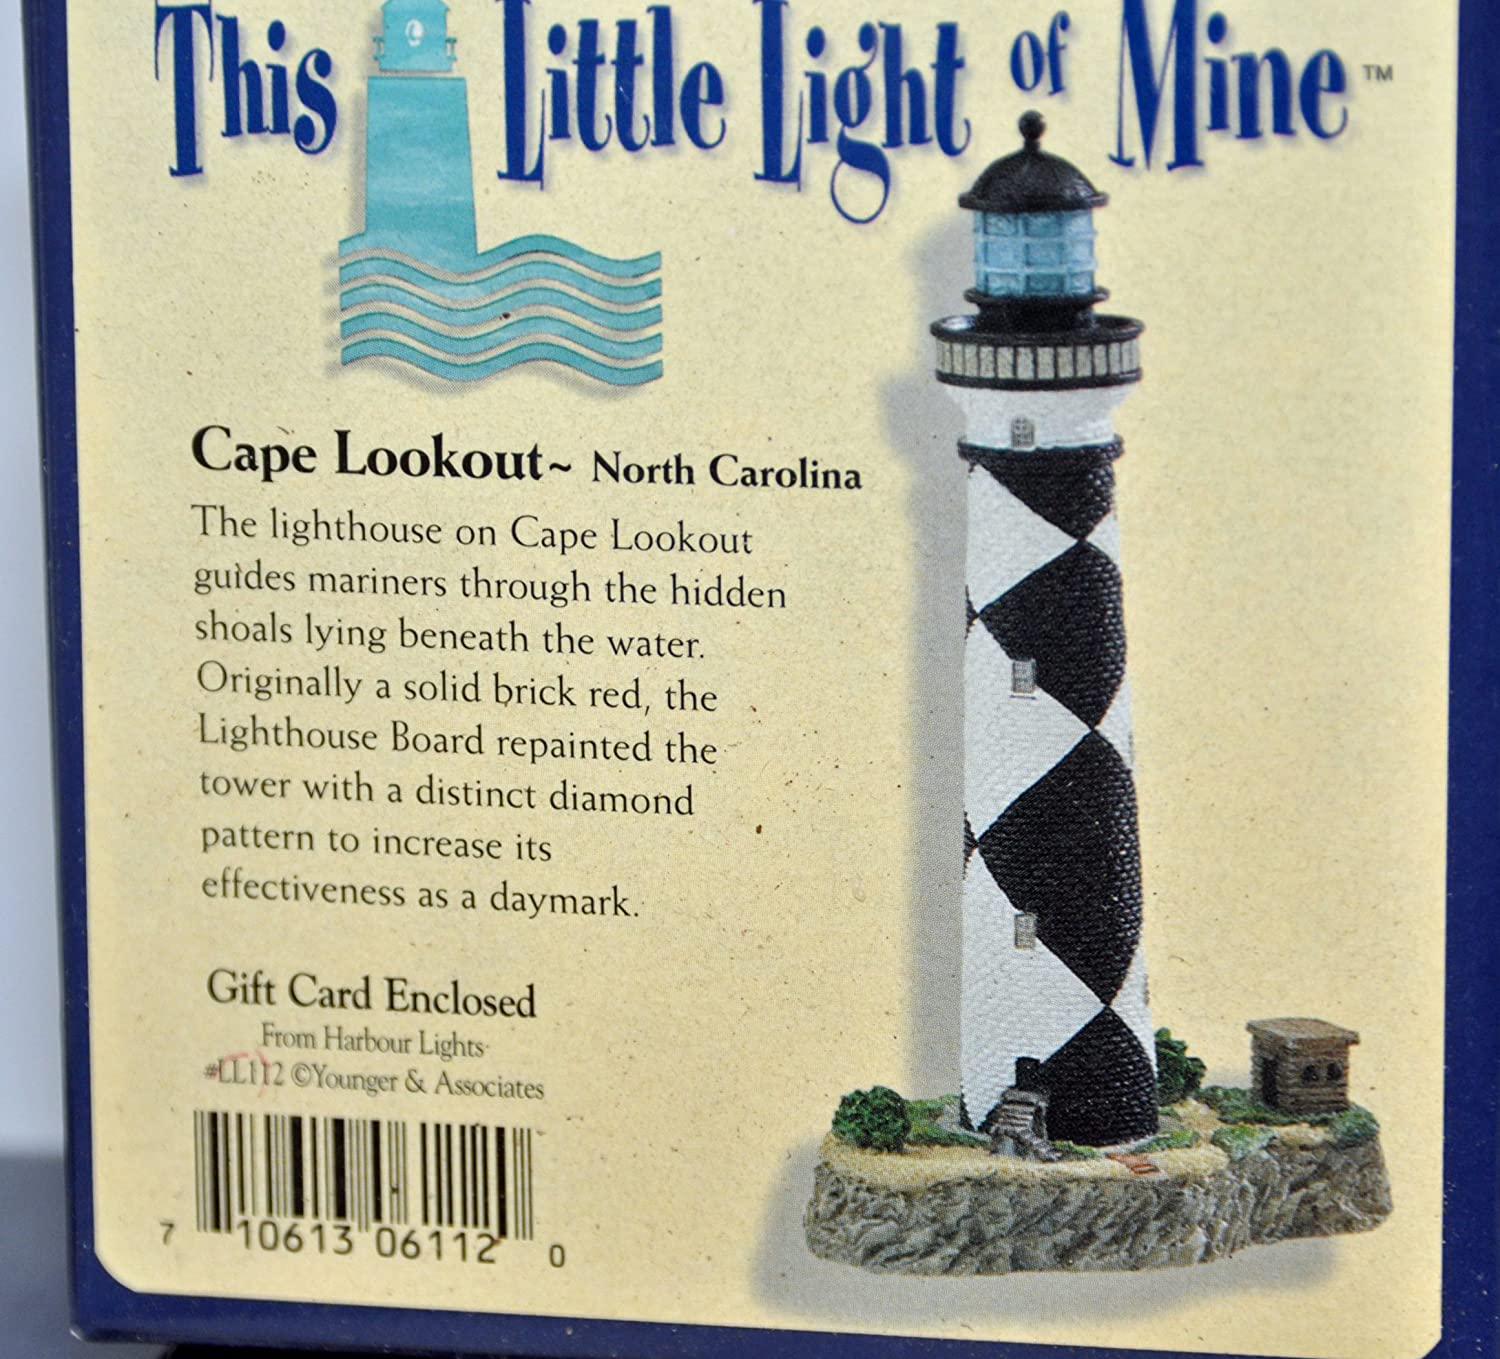 Harbour Lights Cape Lookout NC Brand New in Box with Authenticity Card